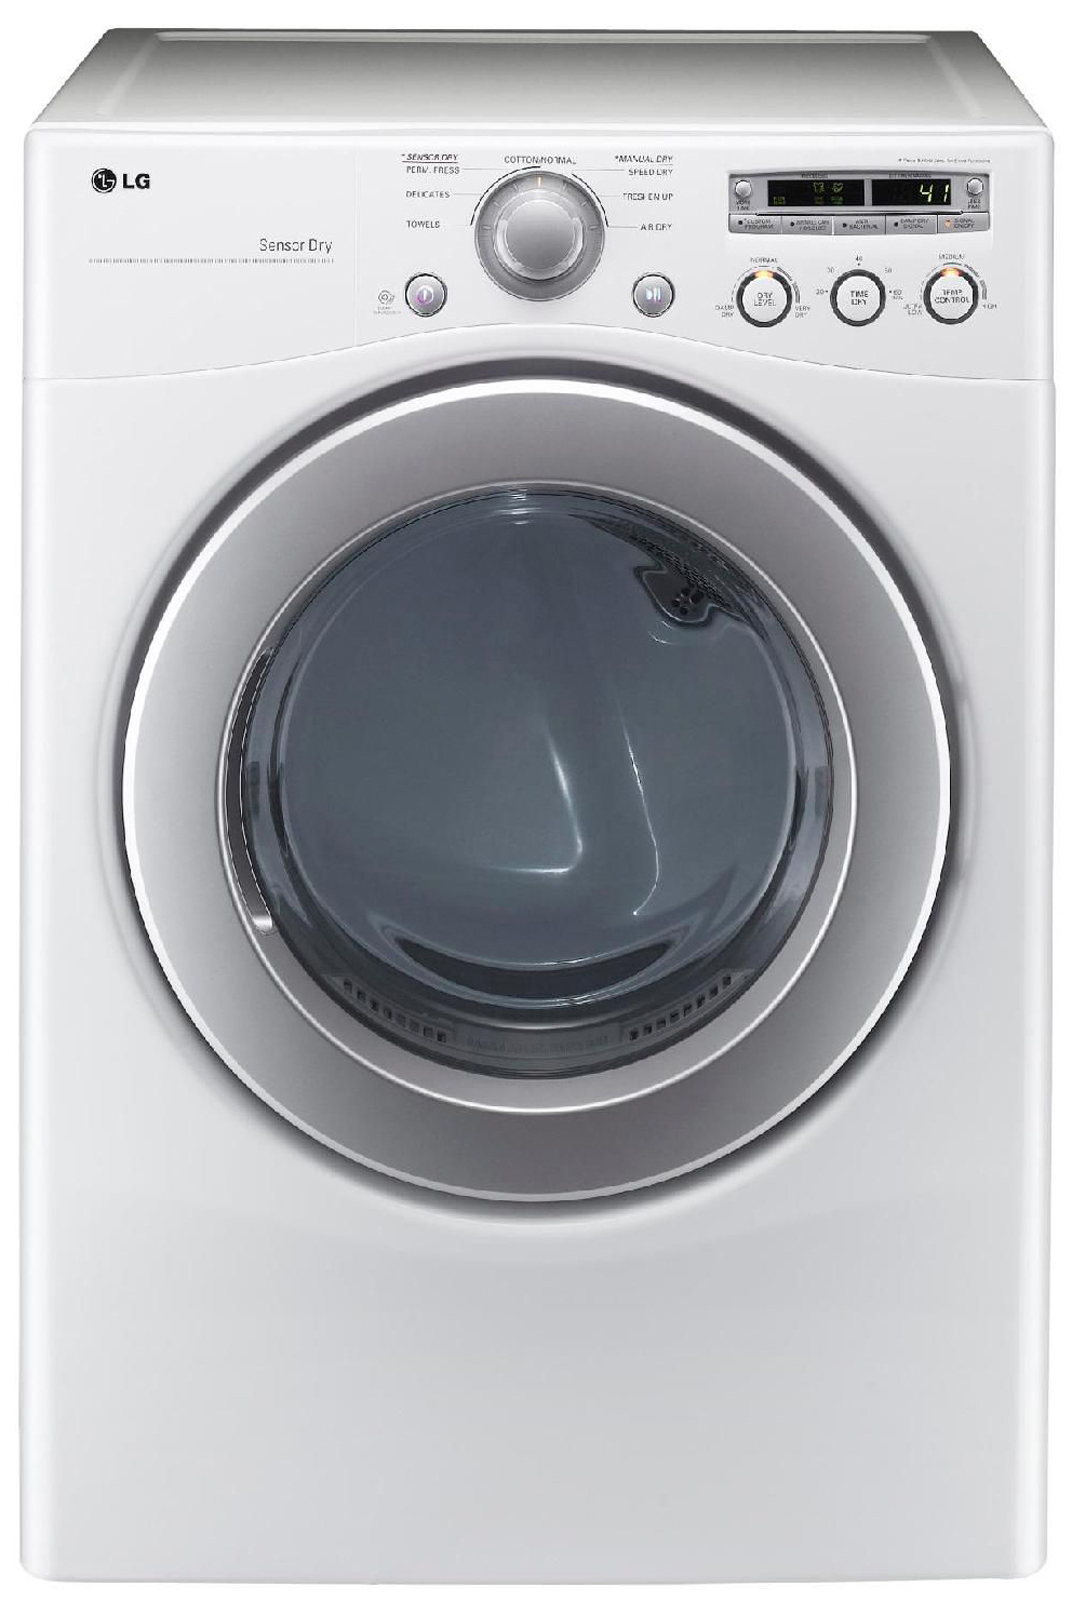 LG  7.1 cu. ft. Extra Large Capacity Electric Dryer with Sensor Dry -